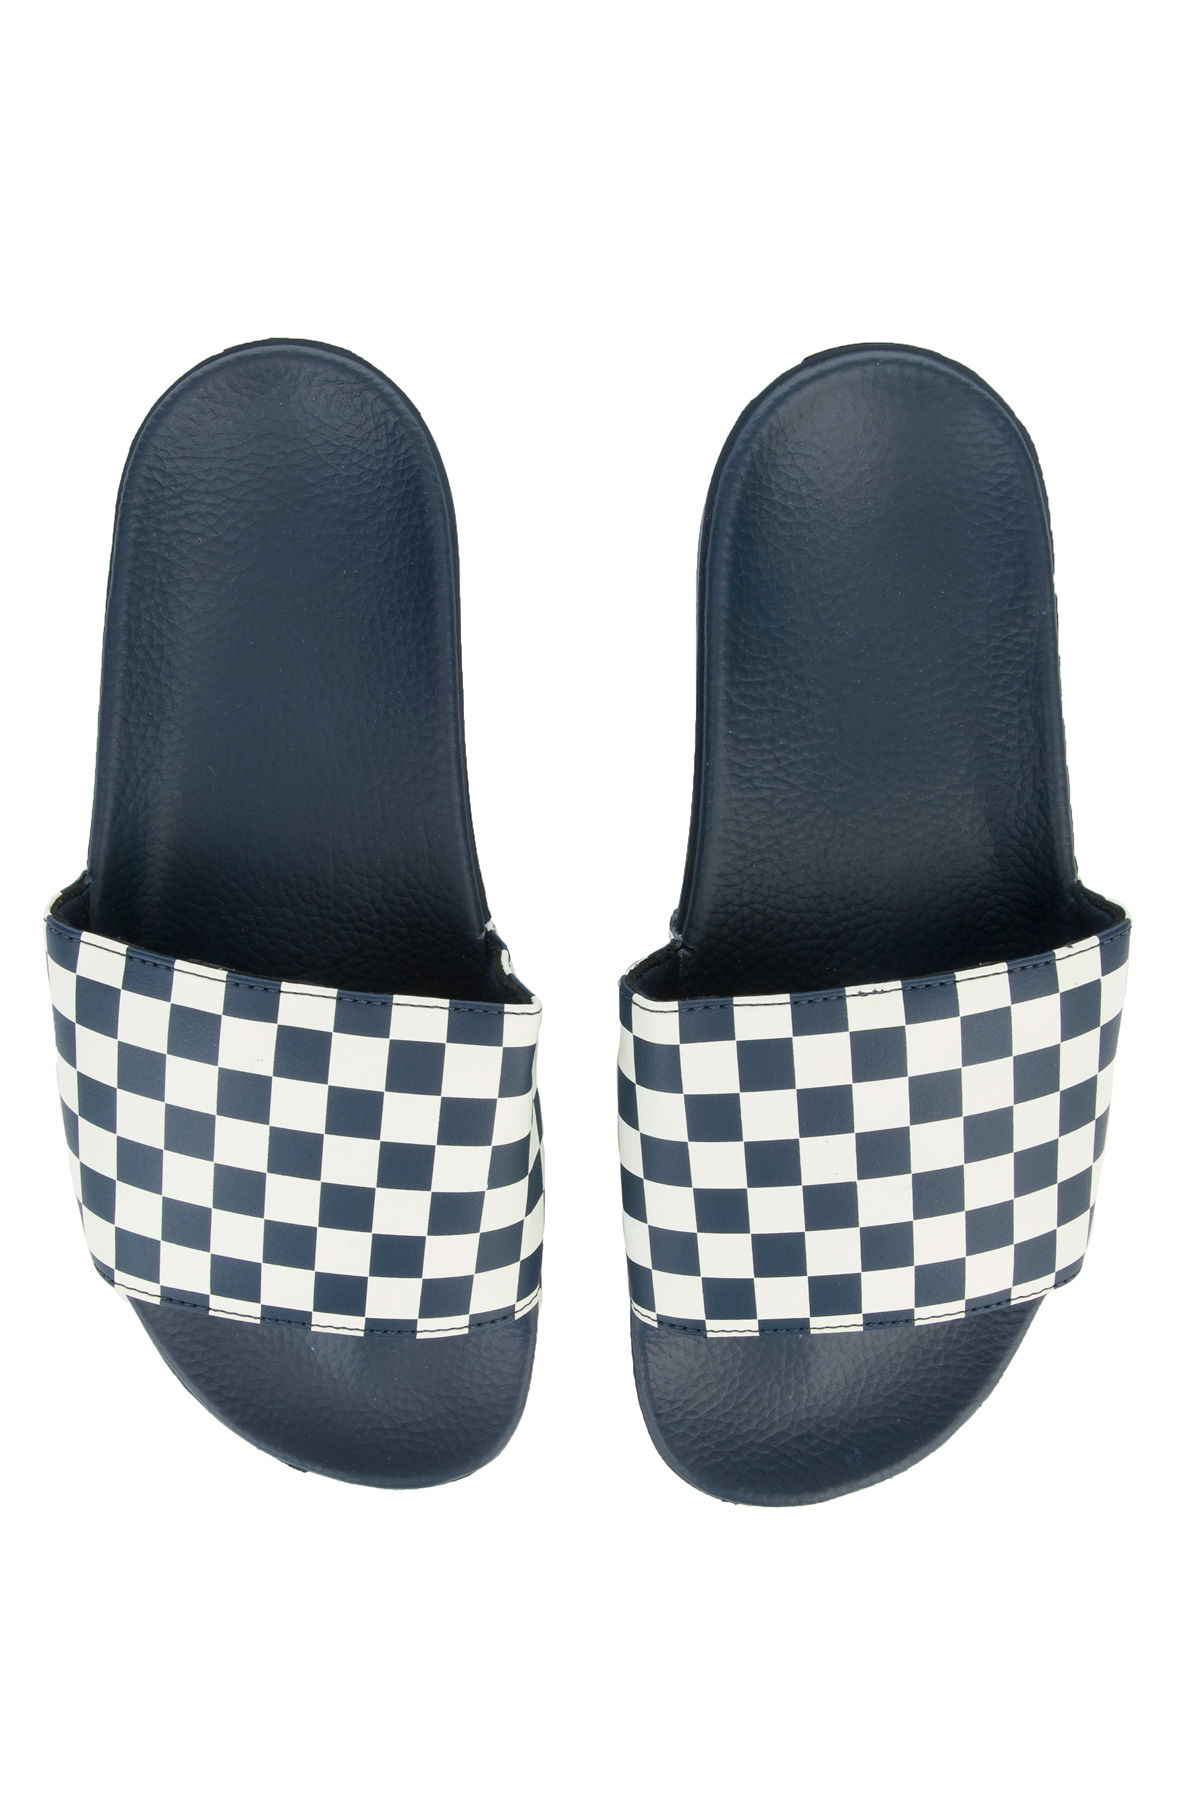 Image of The Men's Slide-On in Dress Blues Checkerboard